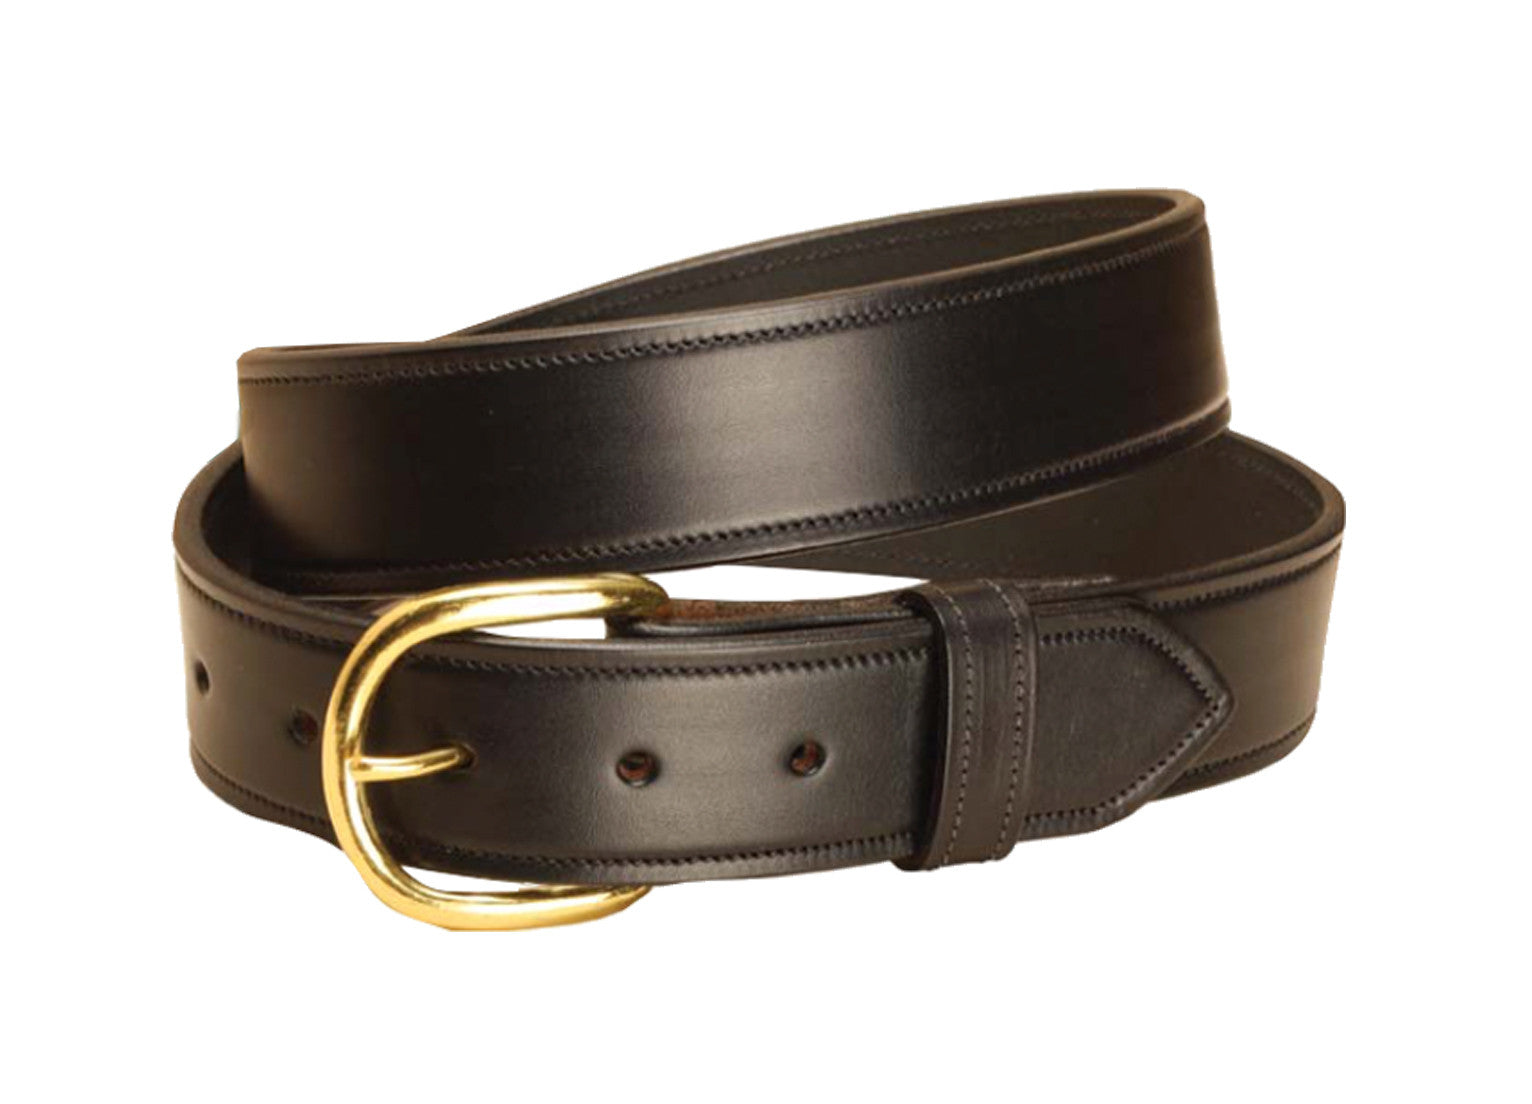 "Tory Leather 1 1/2"" Leather Belt - North Shore Saddlery"